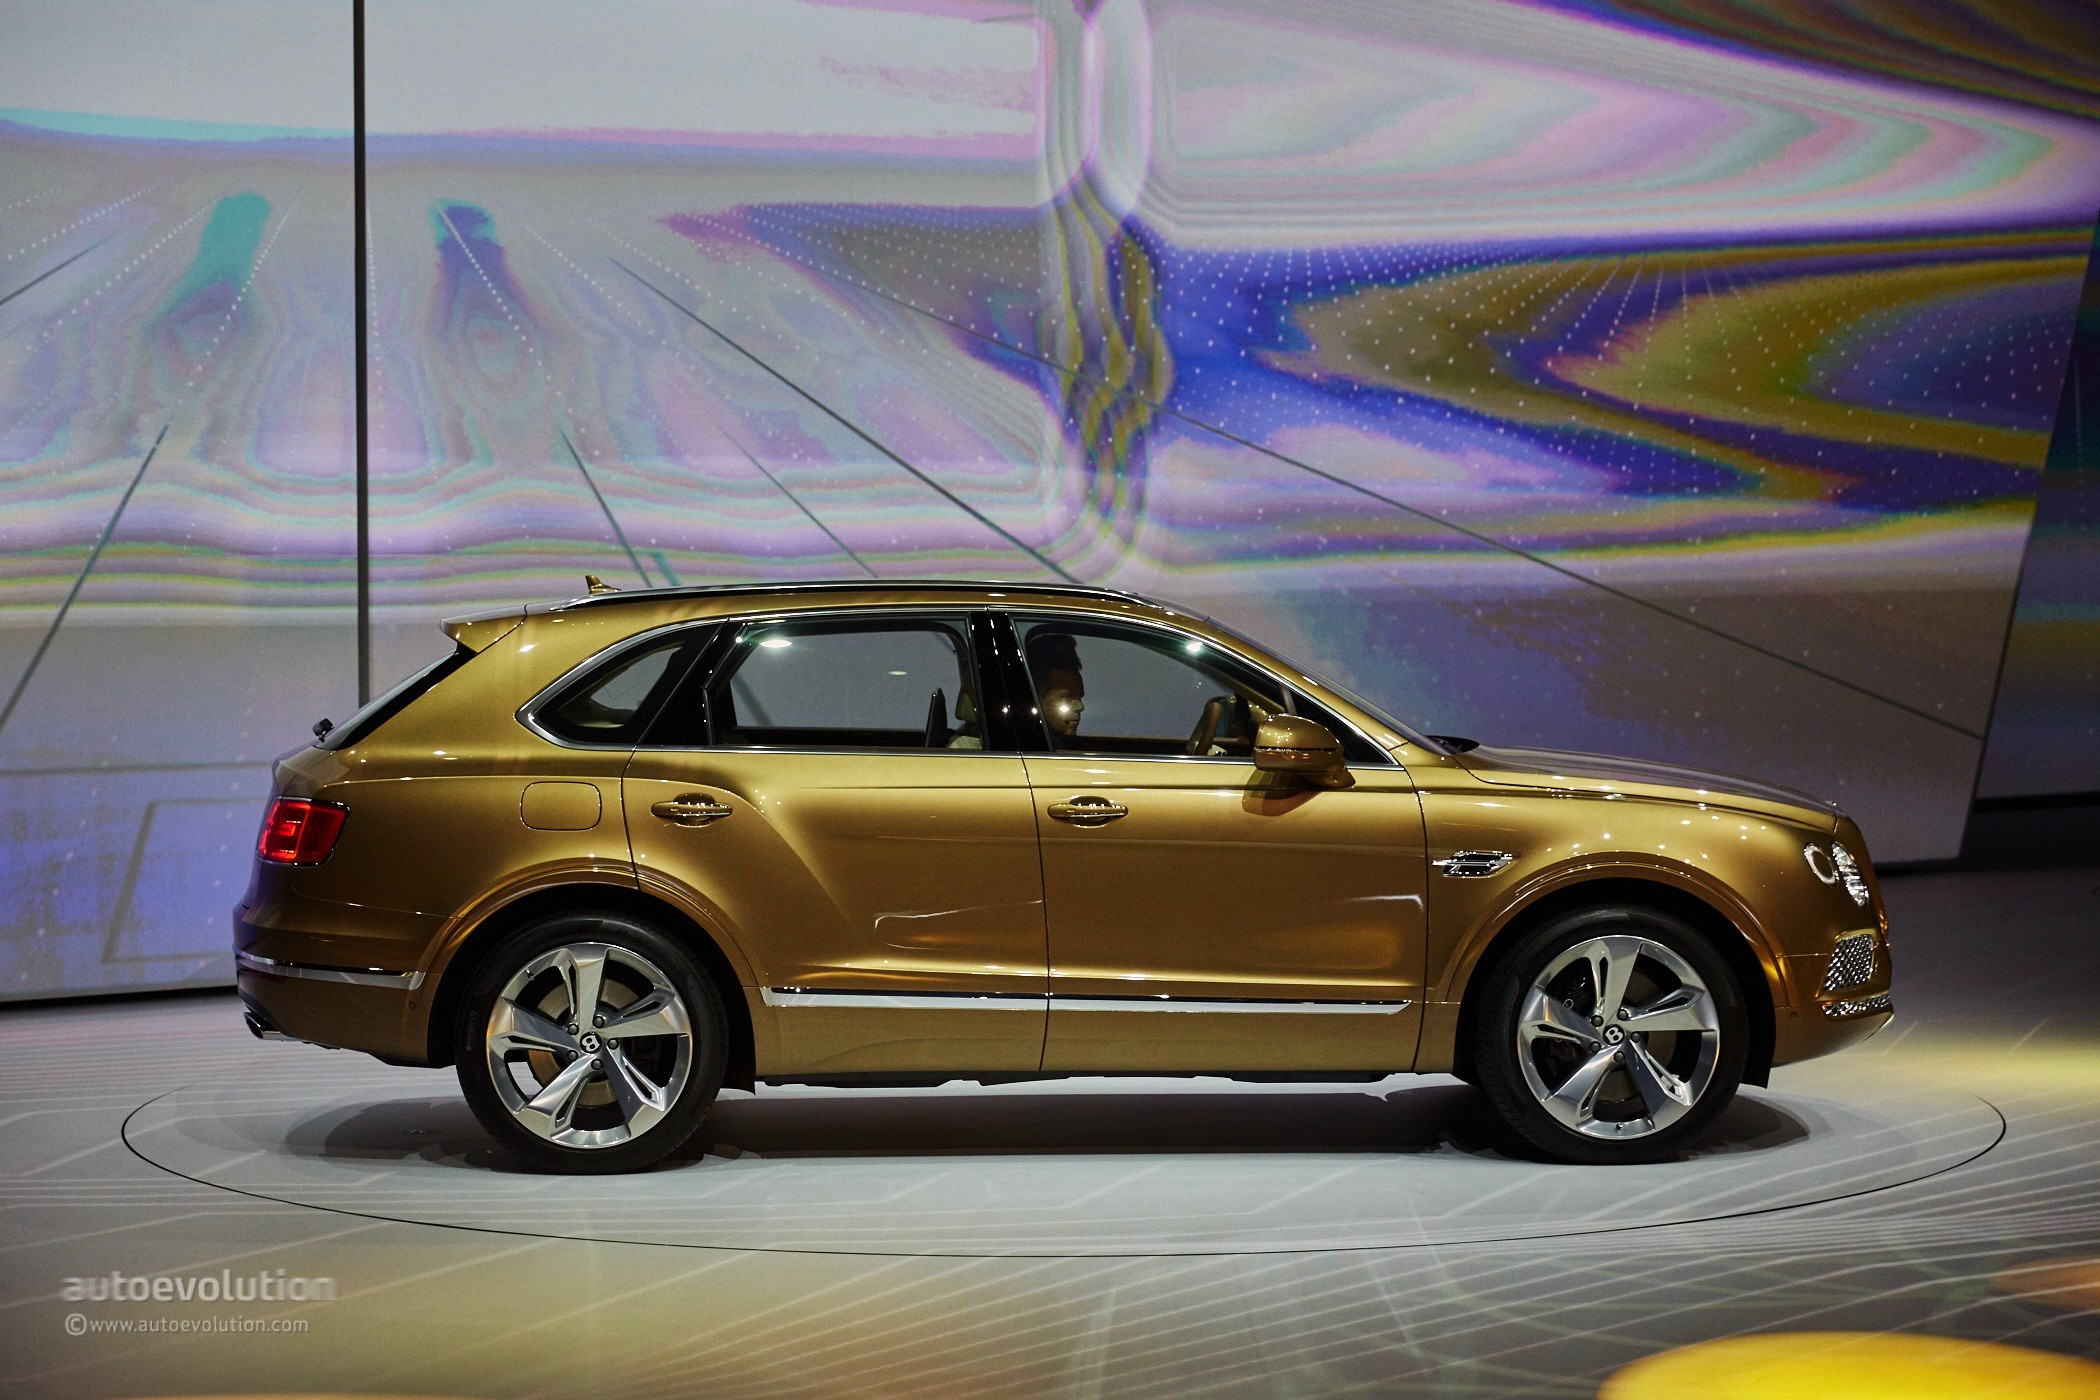 Fastest Car In The World Wallpaper 2016 Bentley Bentayga Makes World Debut In Gold At